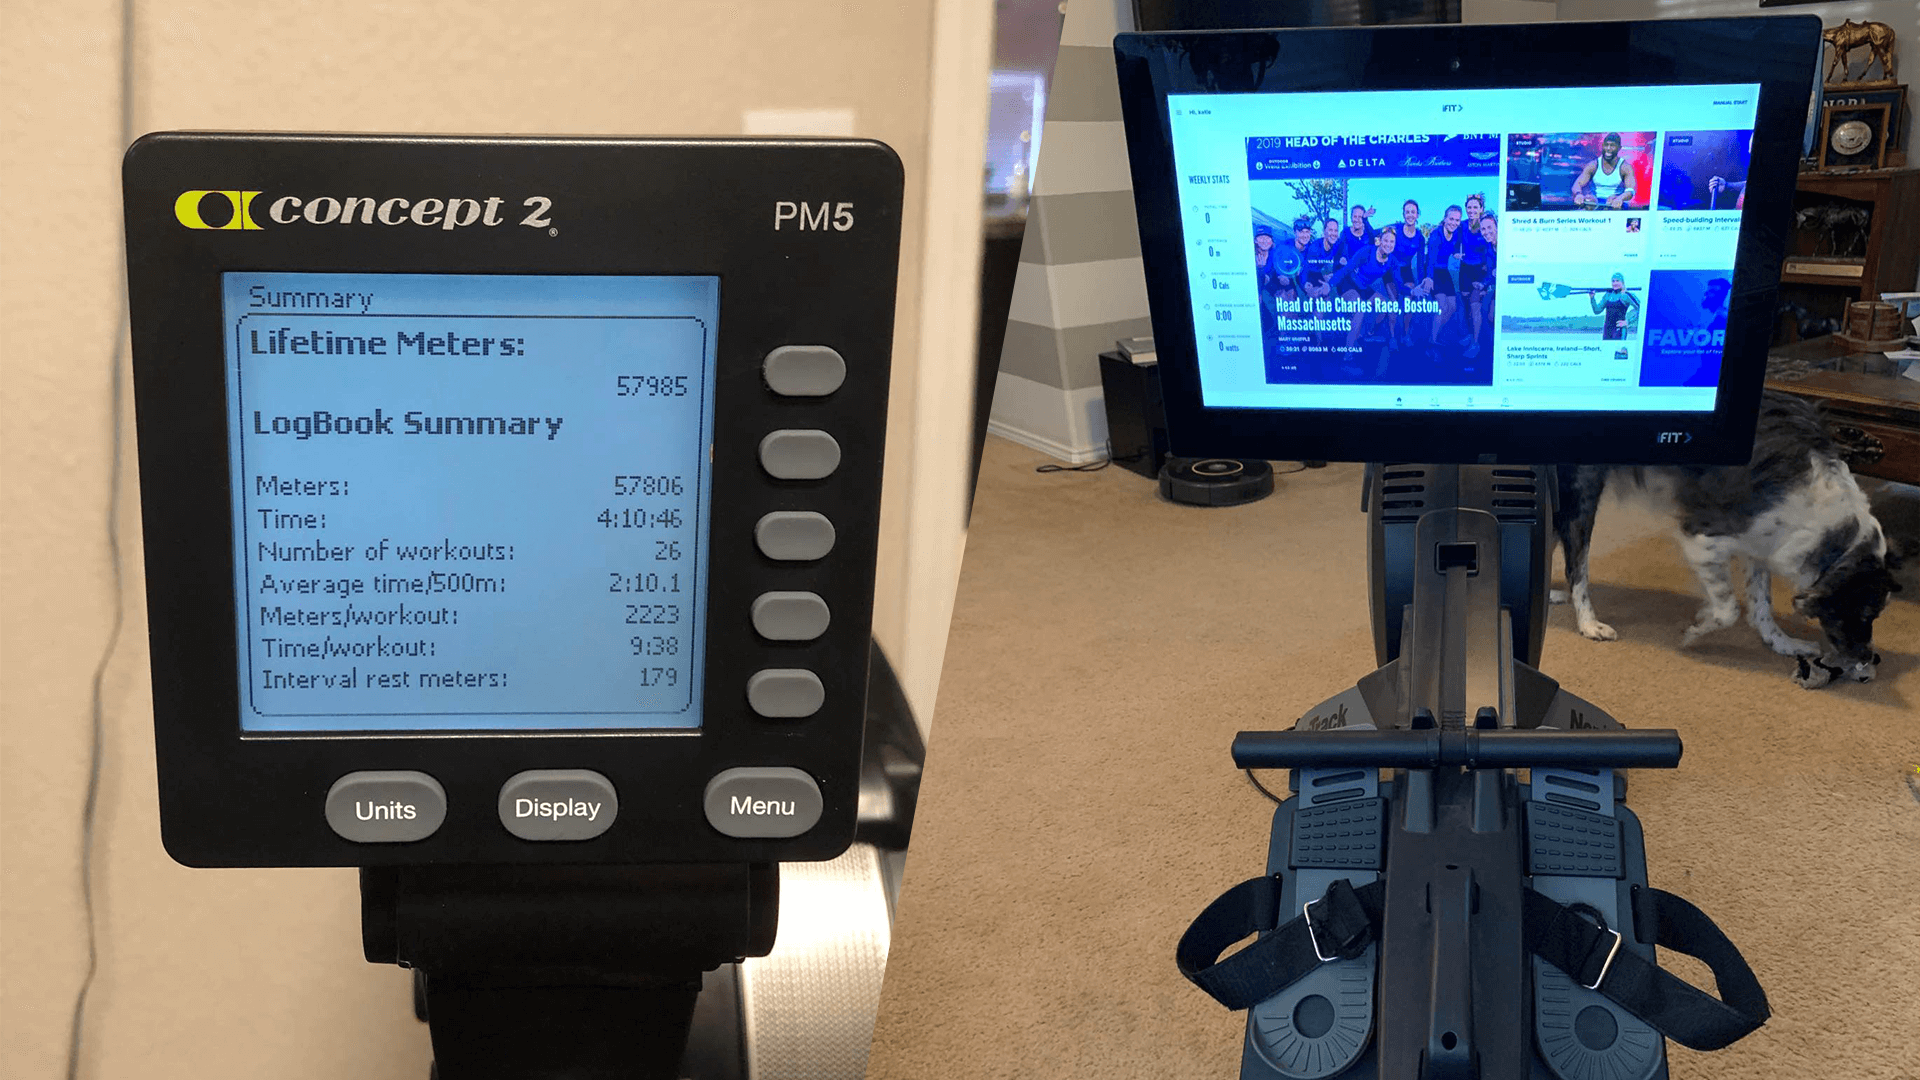 Comparing the NordicTrack RW900 the Concept 2 Model D when it comes to workout programs for each